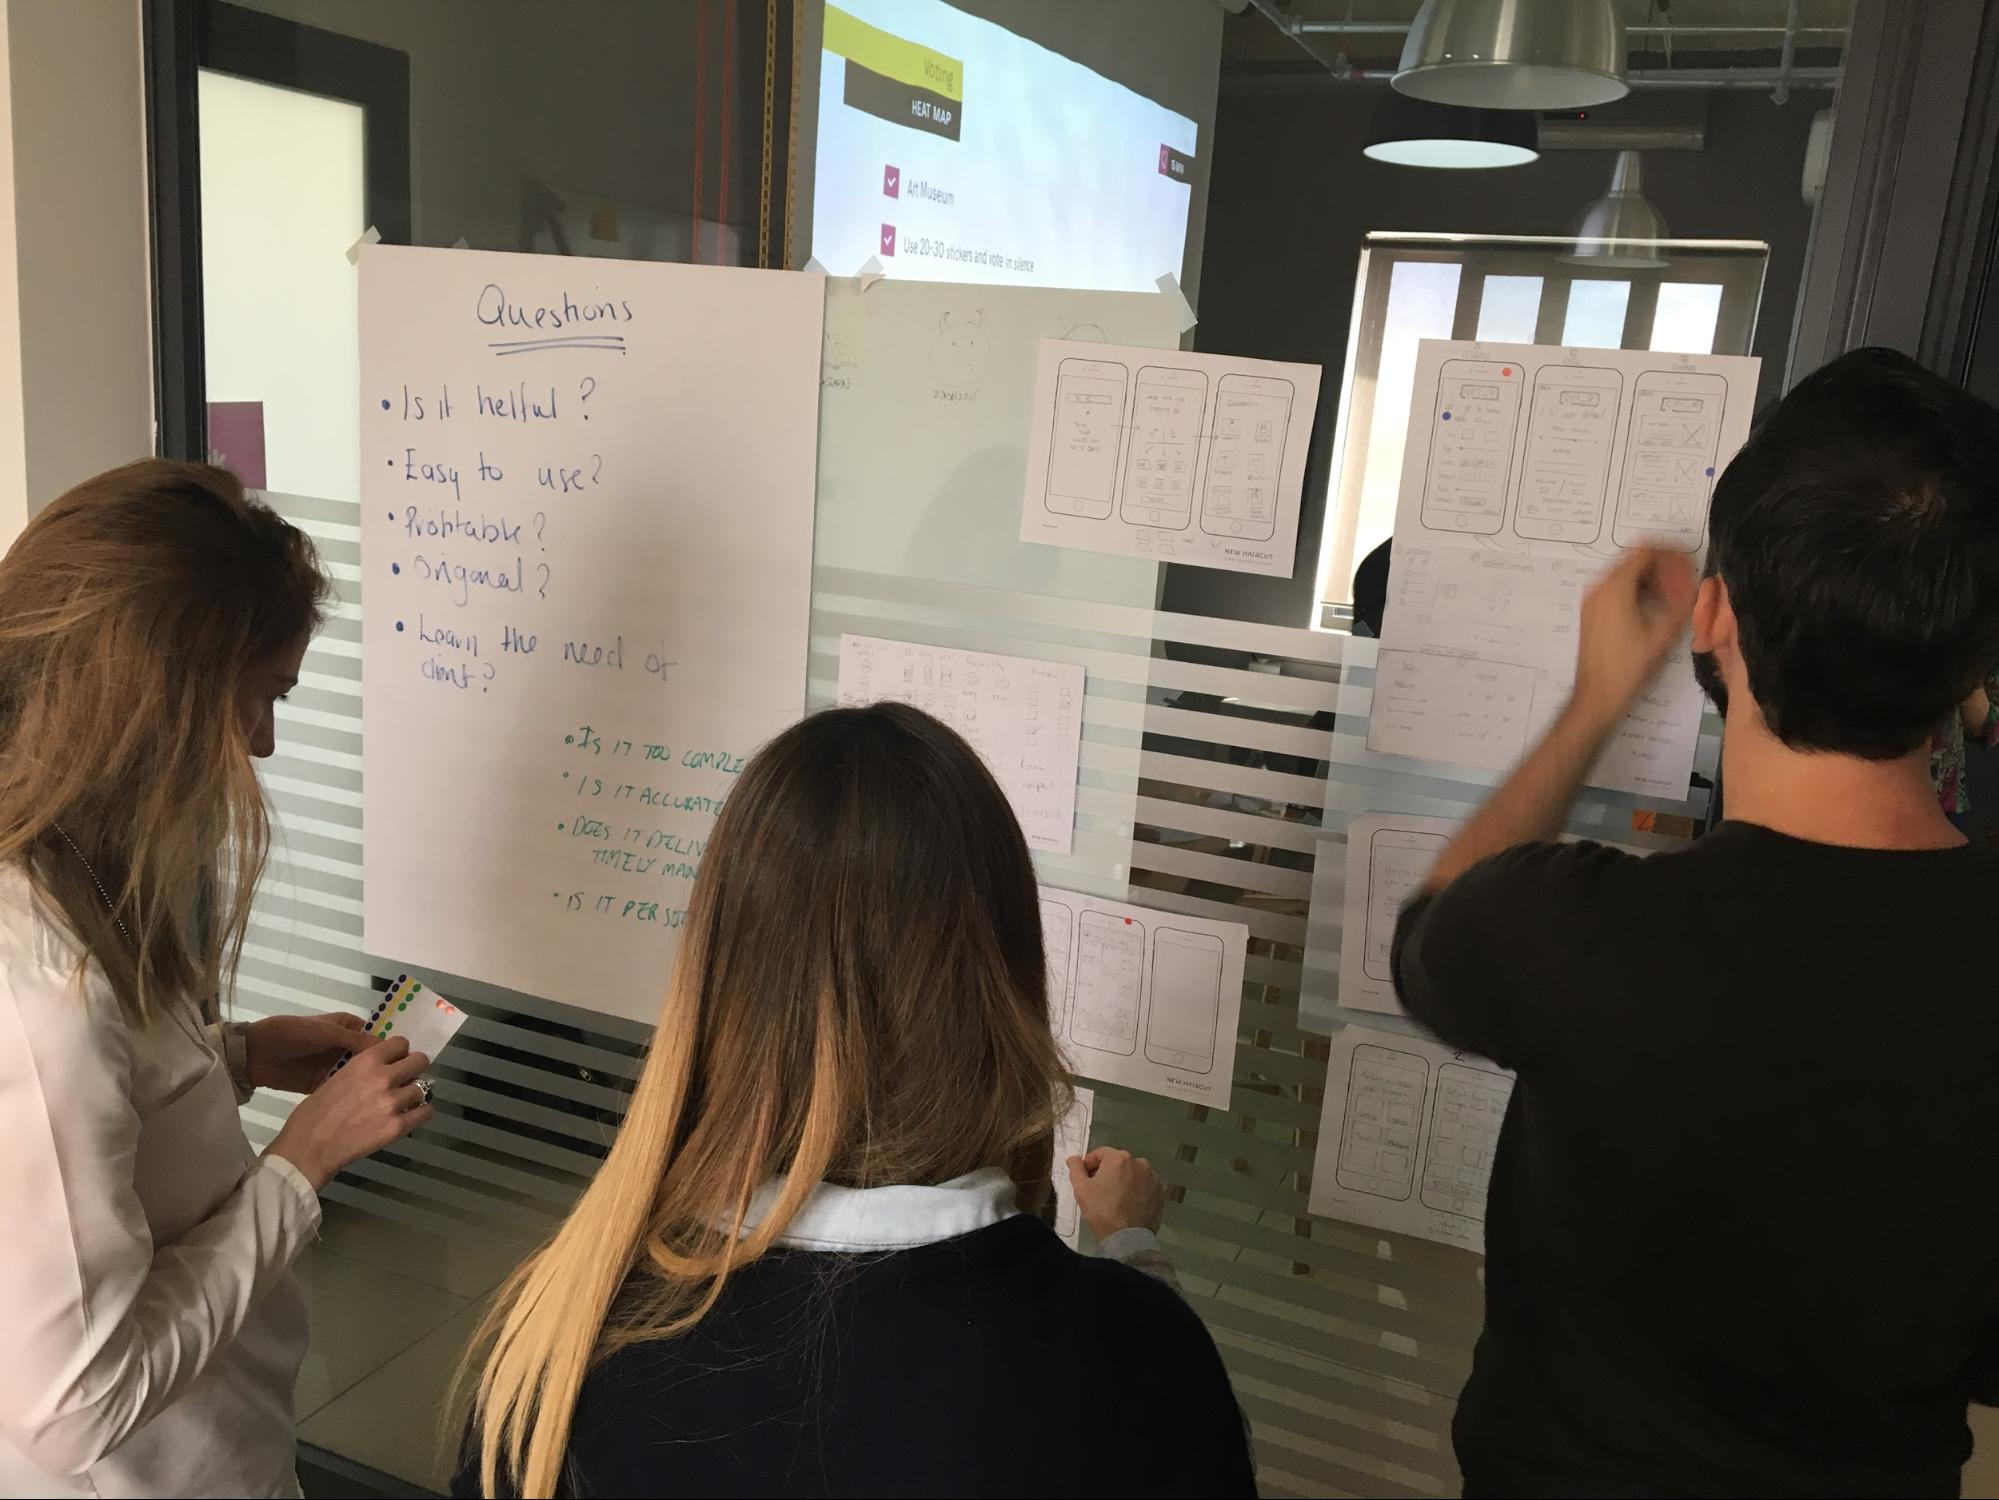 Design sprint disasters